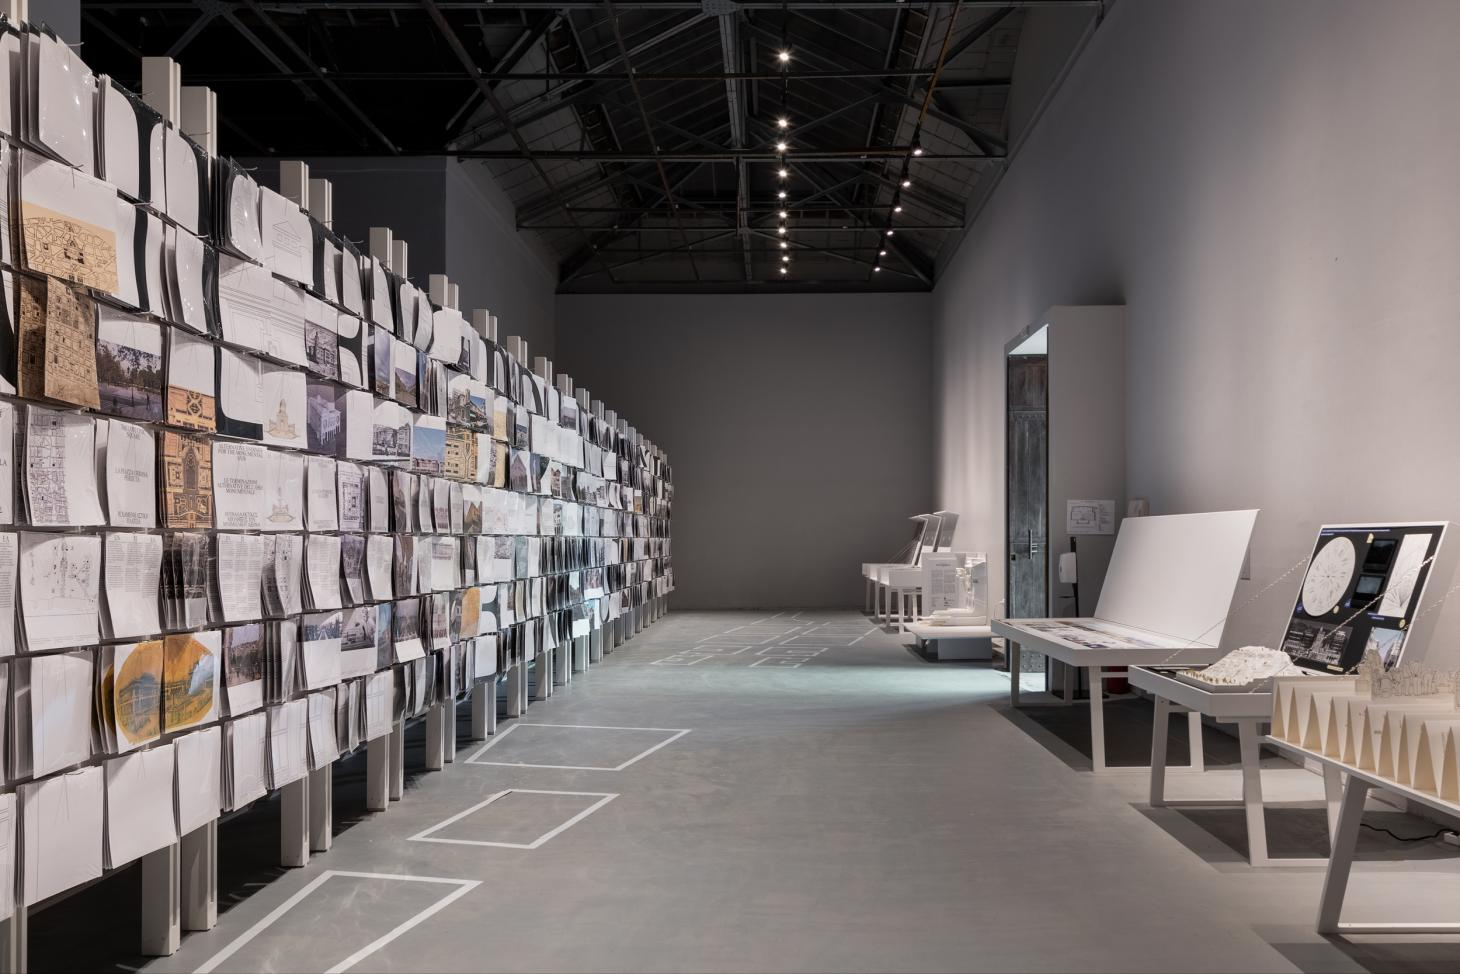 the Greek pavilion's installations span drawings and brochures dedicated to the city of Thessaloniki, all for the 2021 Venice Biennale